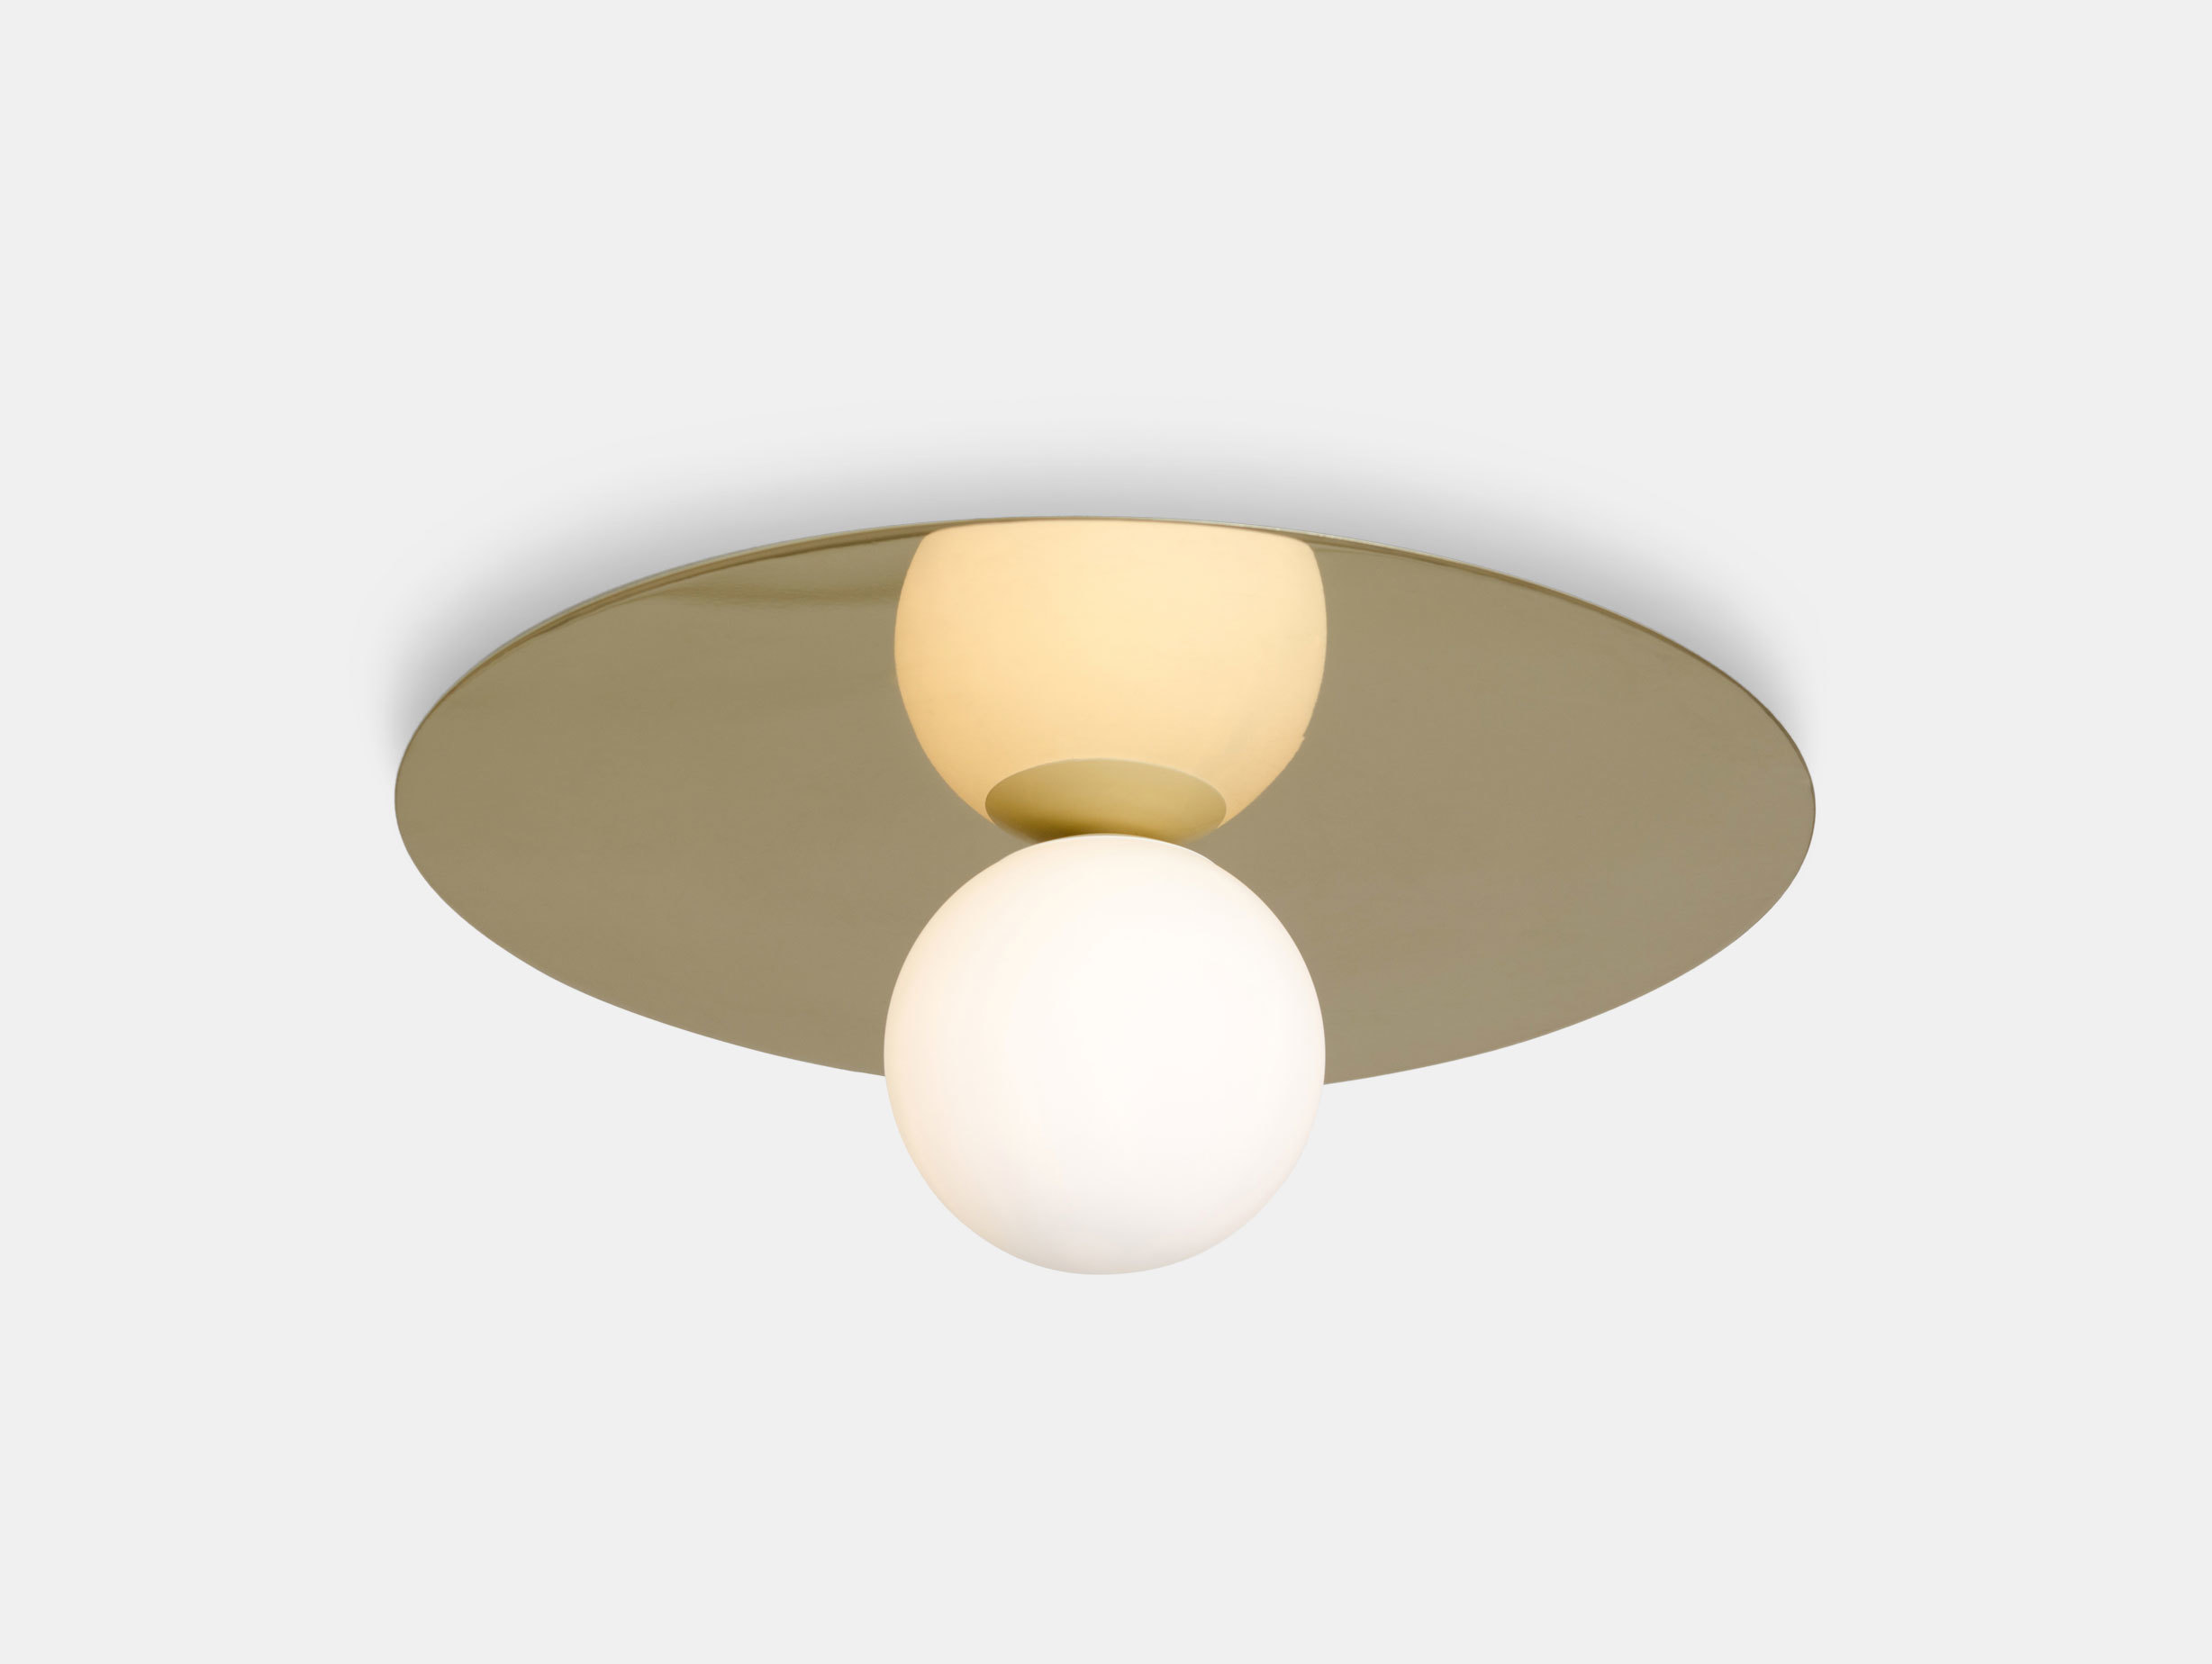 Atelier Areti Plate And Sphere Ceiling Light Gwendolyn Guillane Kerschbaumer